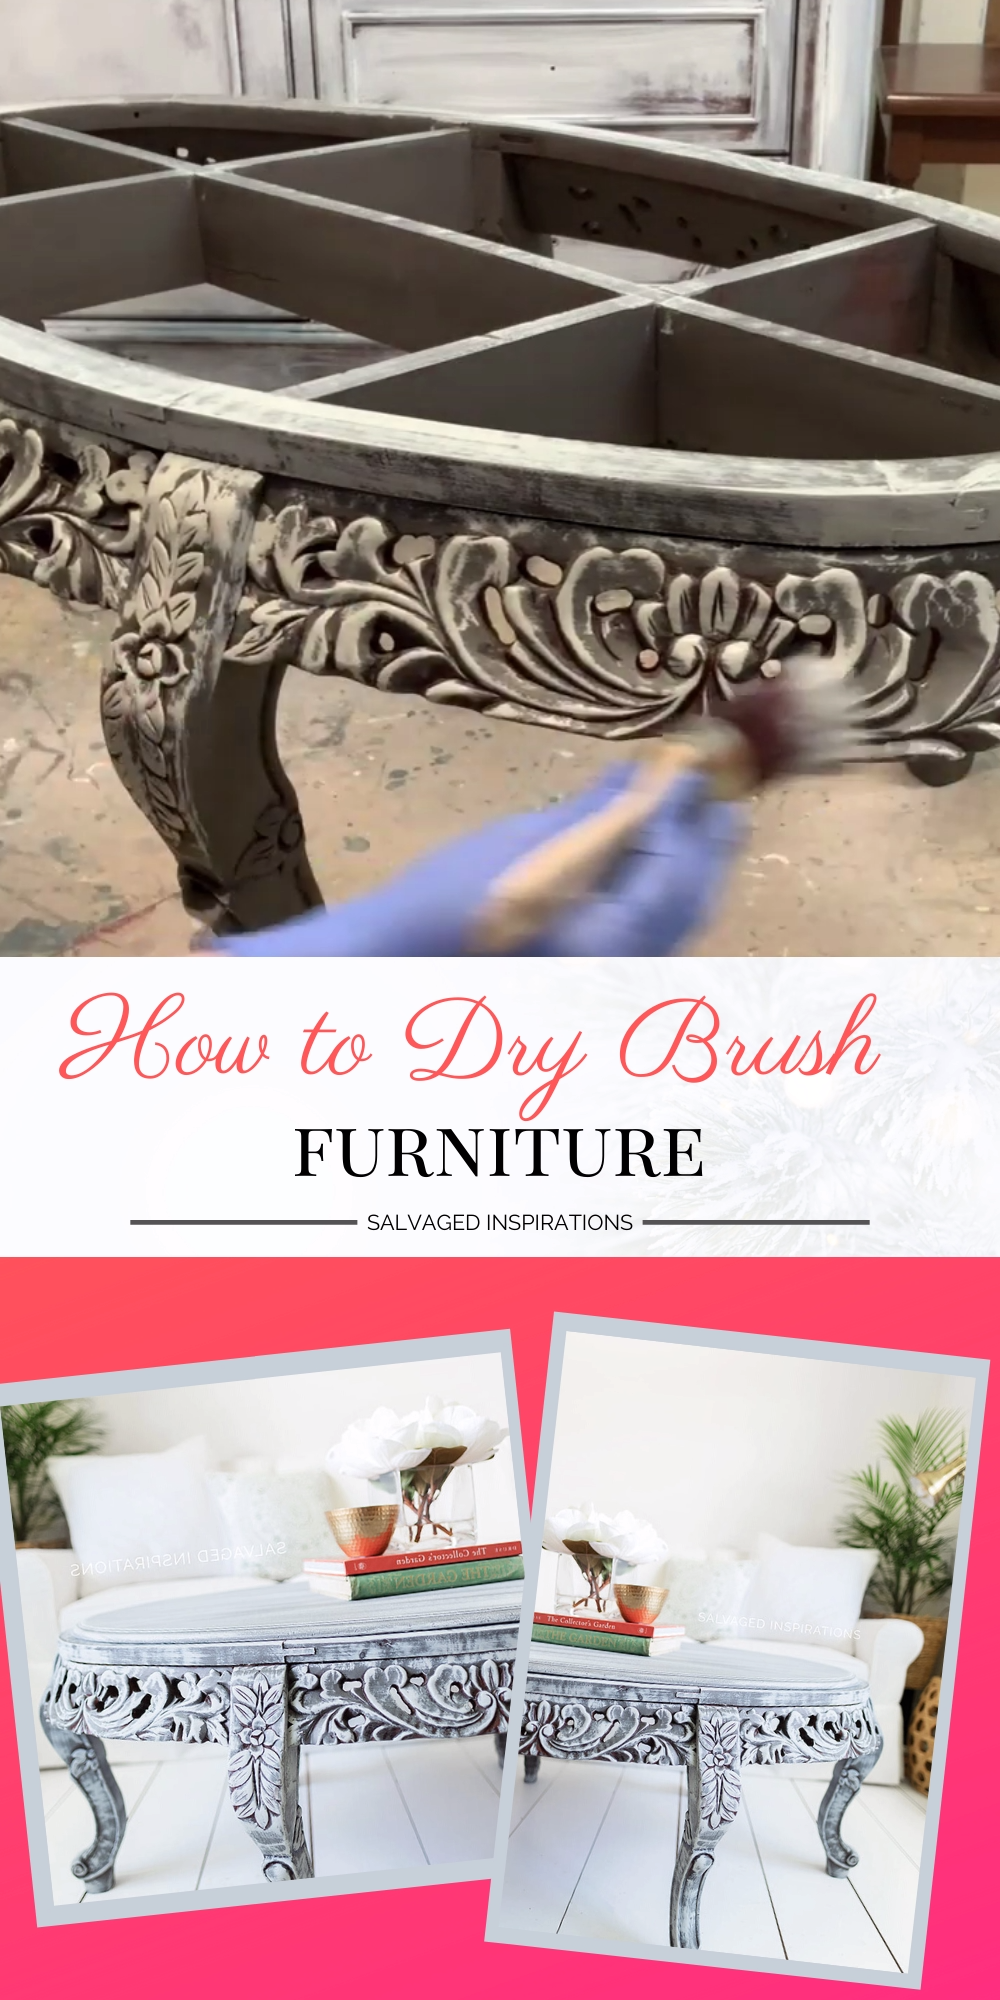 Today I'm sharing how fast and easy it is to dry brush furniture to get dramatic results — just wait until you see this before and after! This curbshopped table gets a gorgeous before and after makeover! #siblog #drybrushing #drybrushedfurniture #tablemakeover #paintedfurniture #furnituremakeover #beforeandafter #dixiebellepaint #furniturefixeruppers #salvagedtable #salvagedinspirations